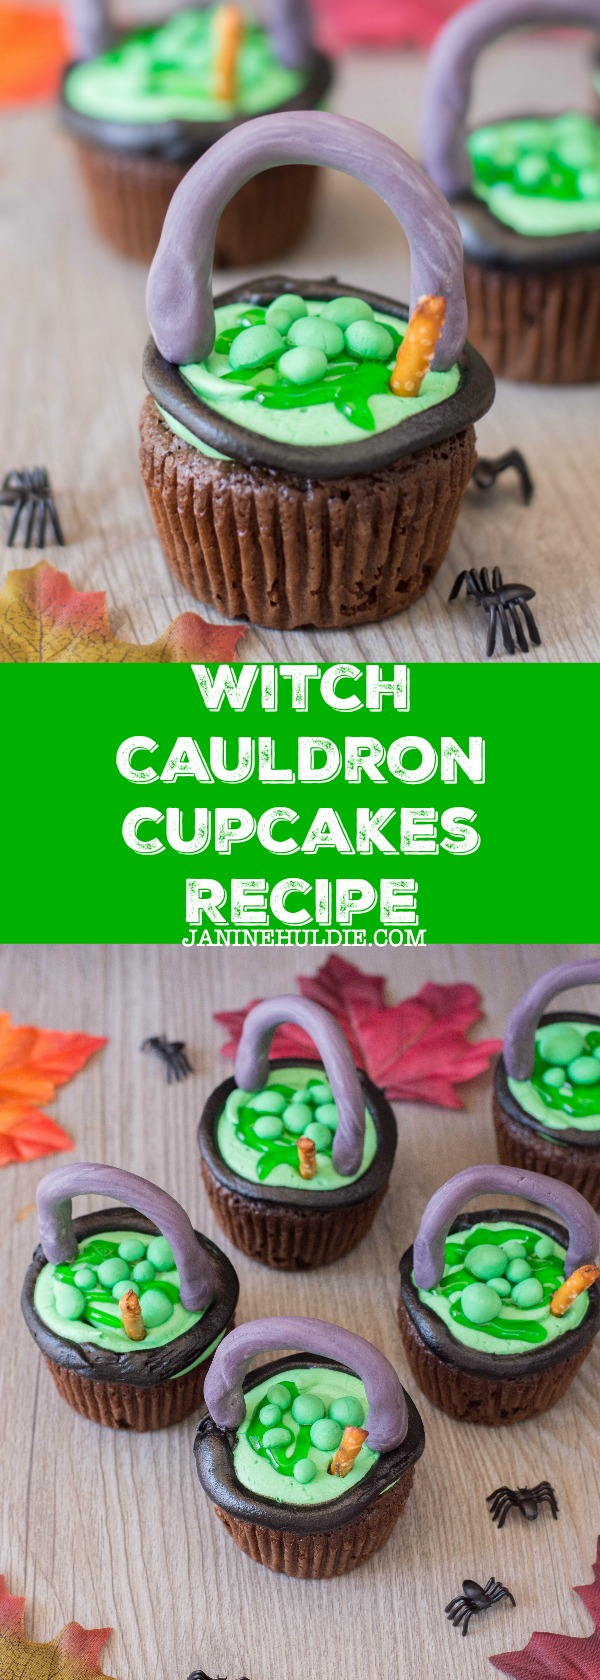 Witch Cauldron Cupcakes Recipe